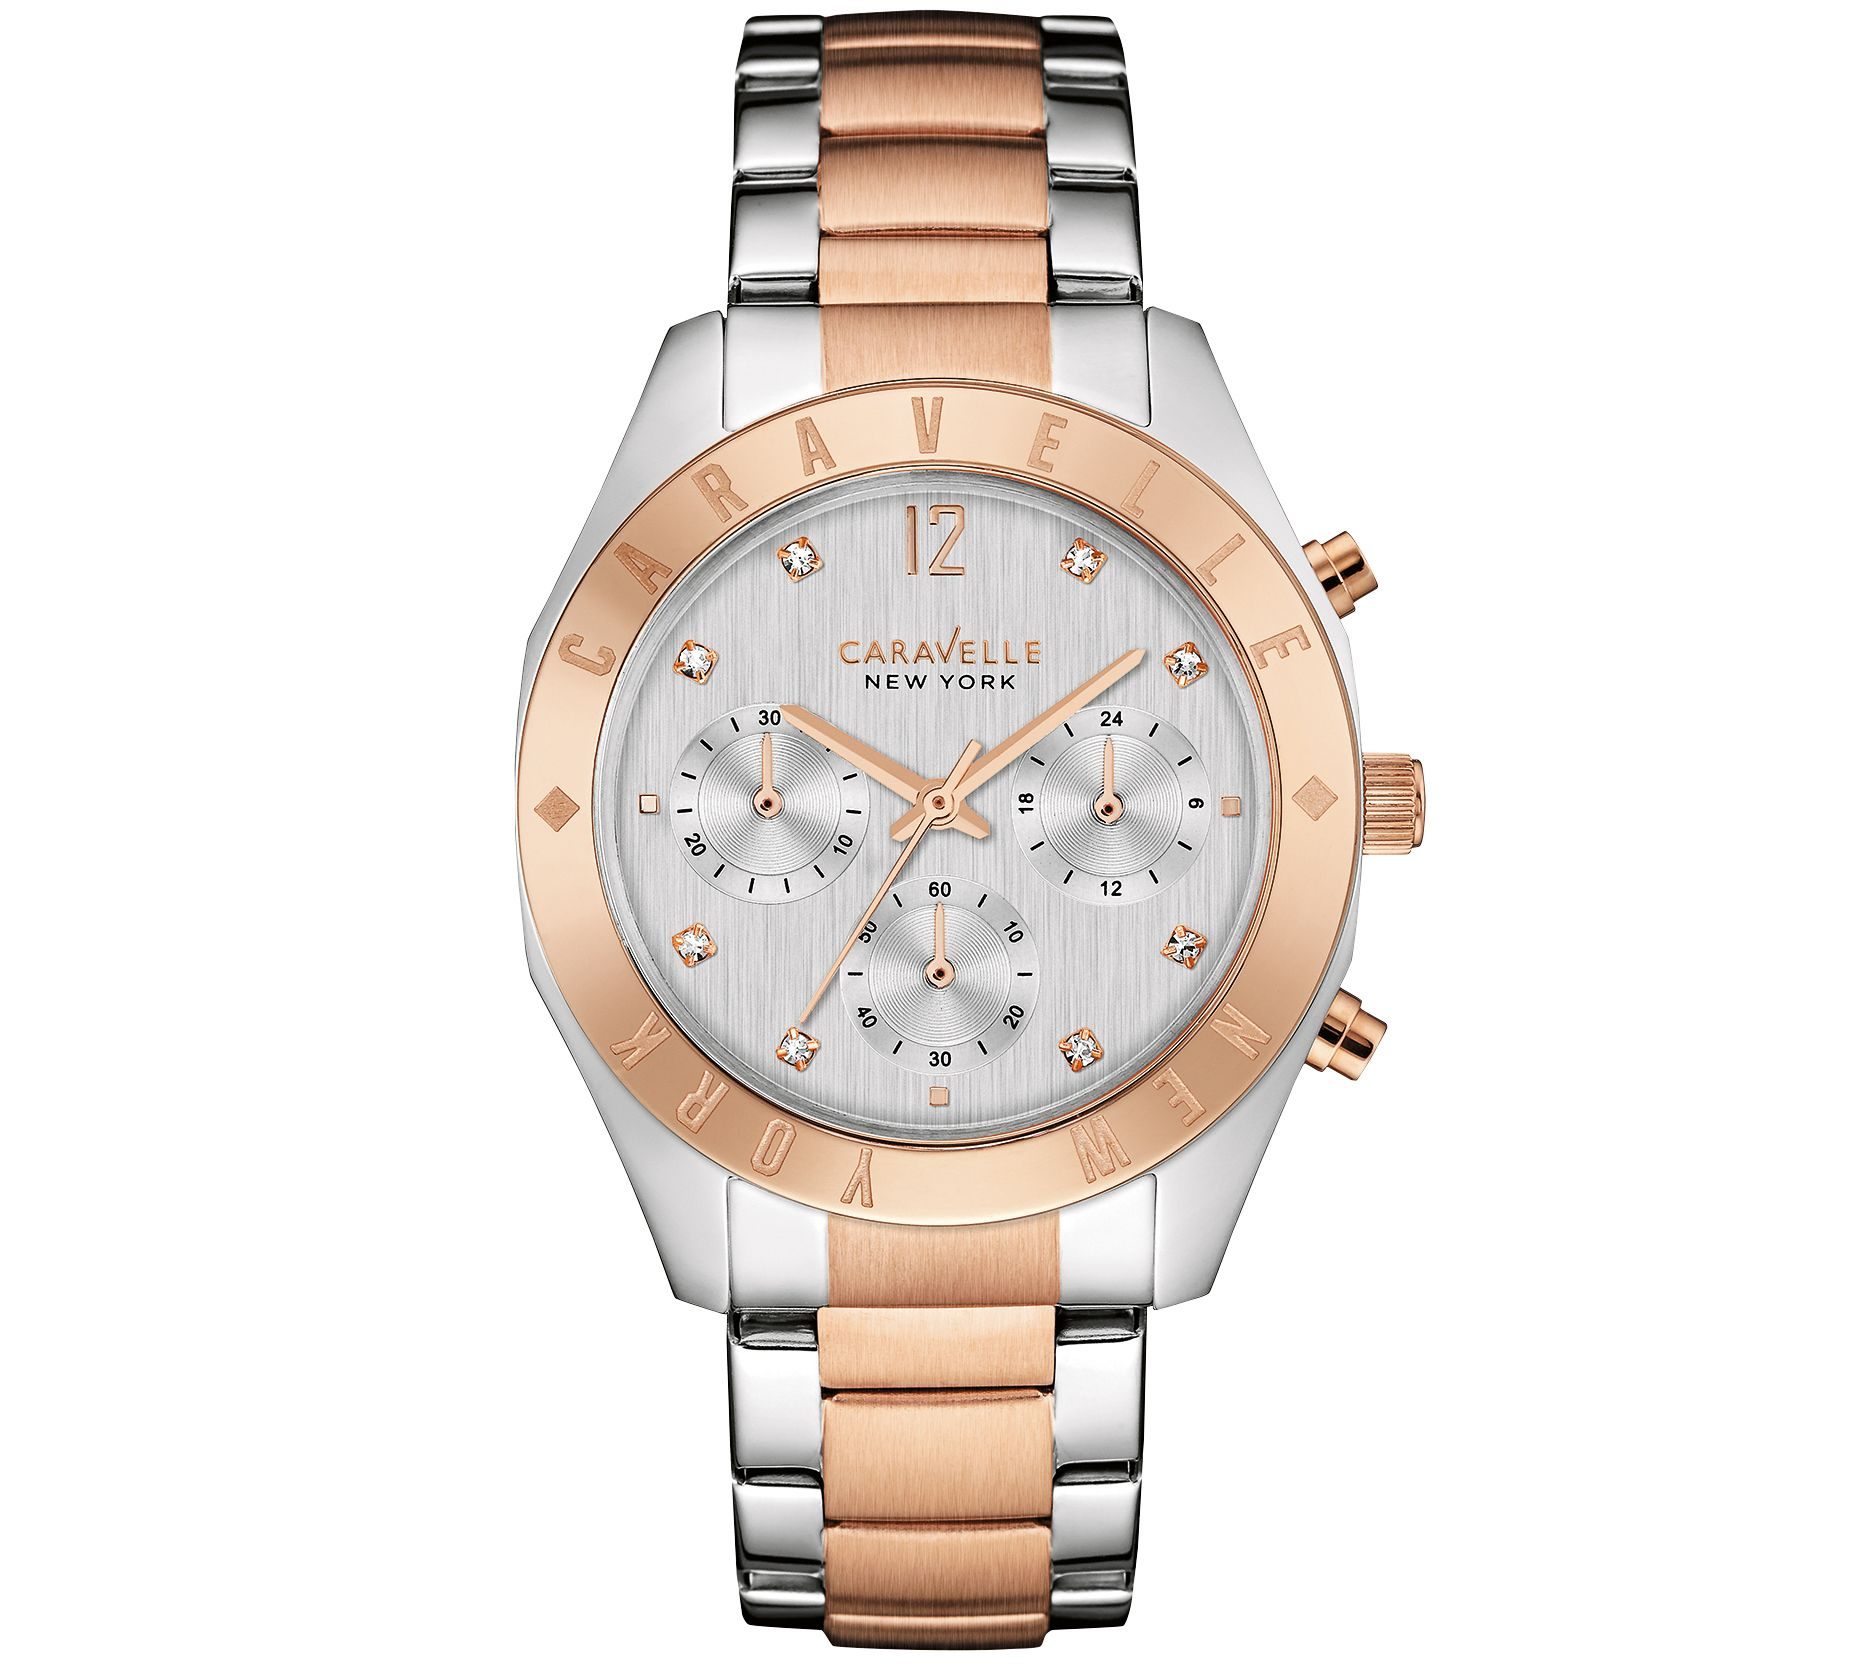 Qvc Bettwäsche Coravelle Caravelle New York Rosetone Women 39s Watch Qvc